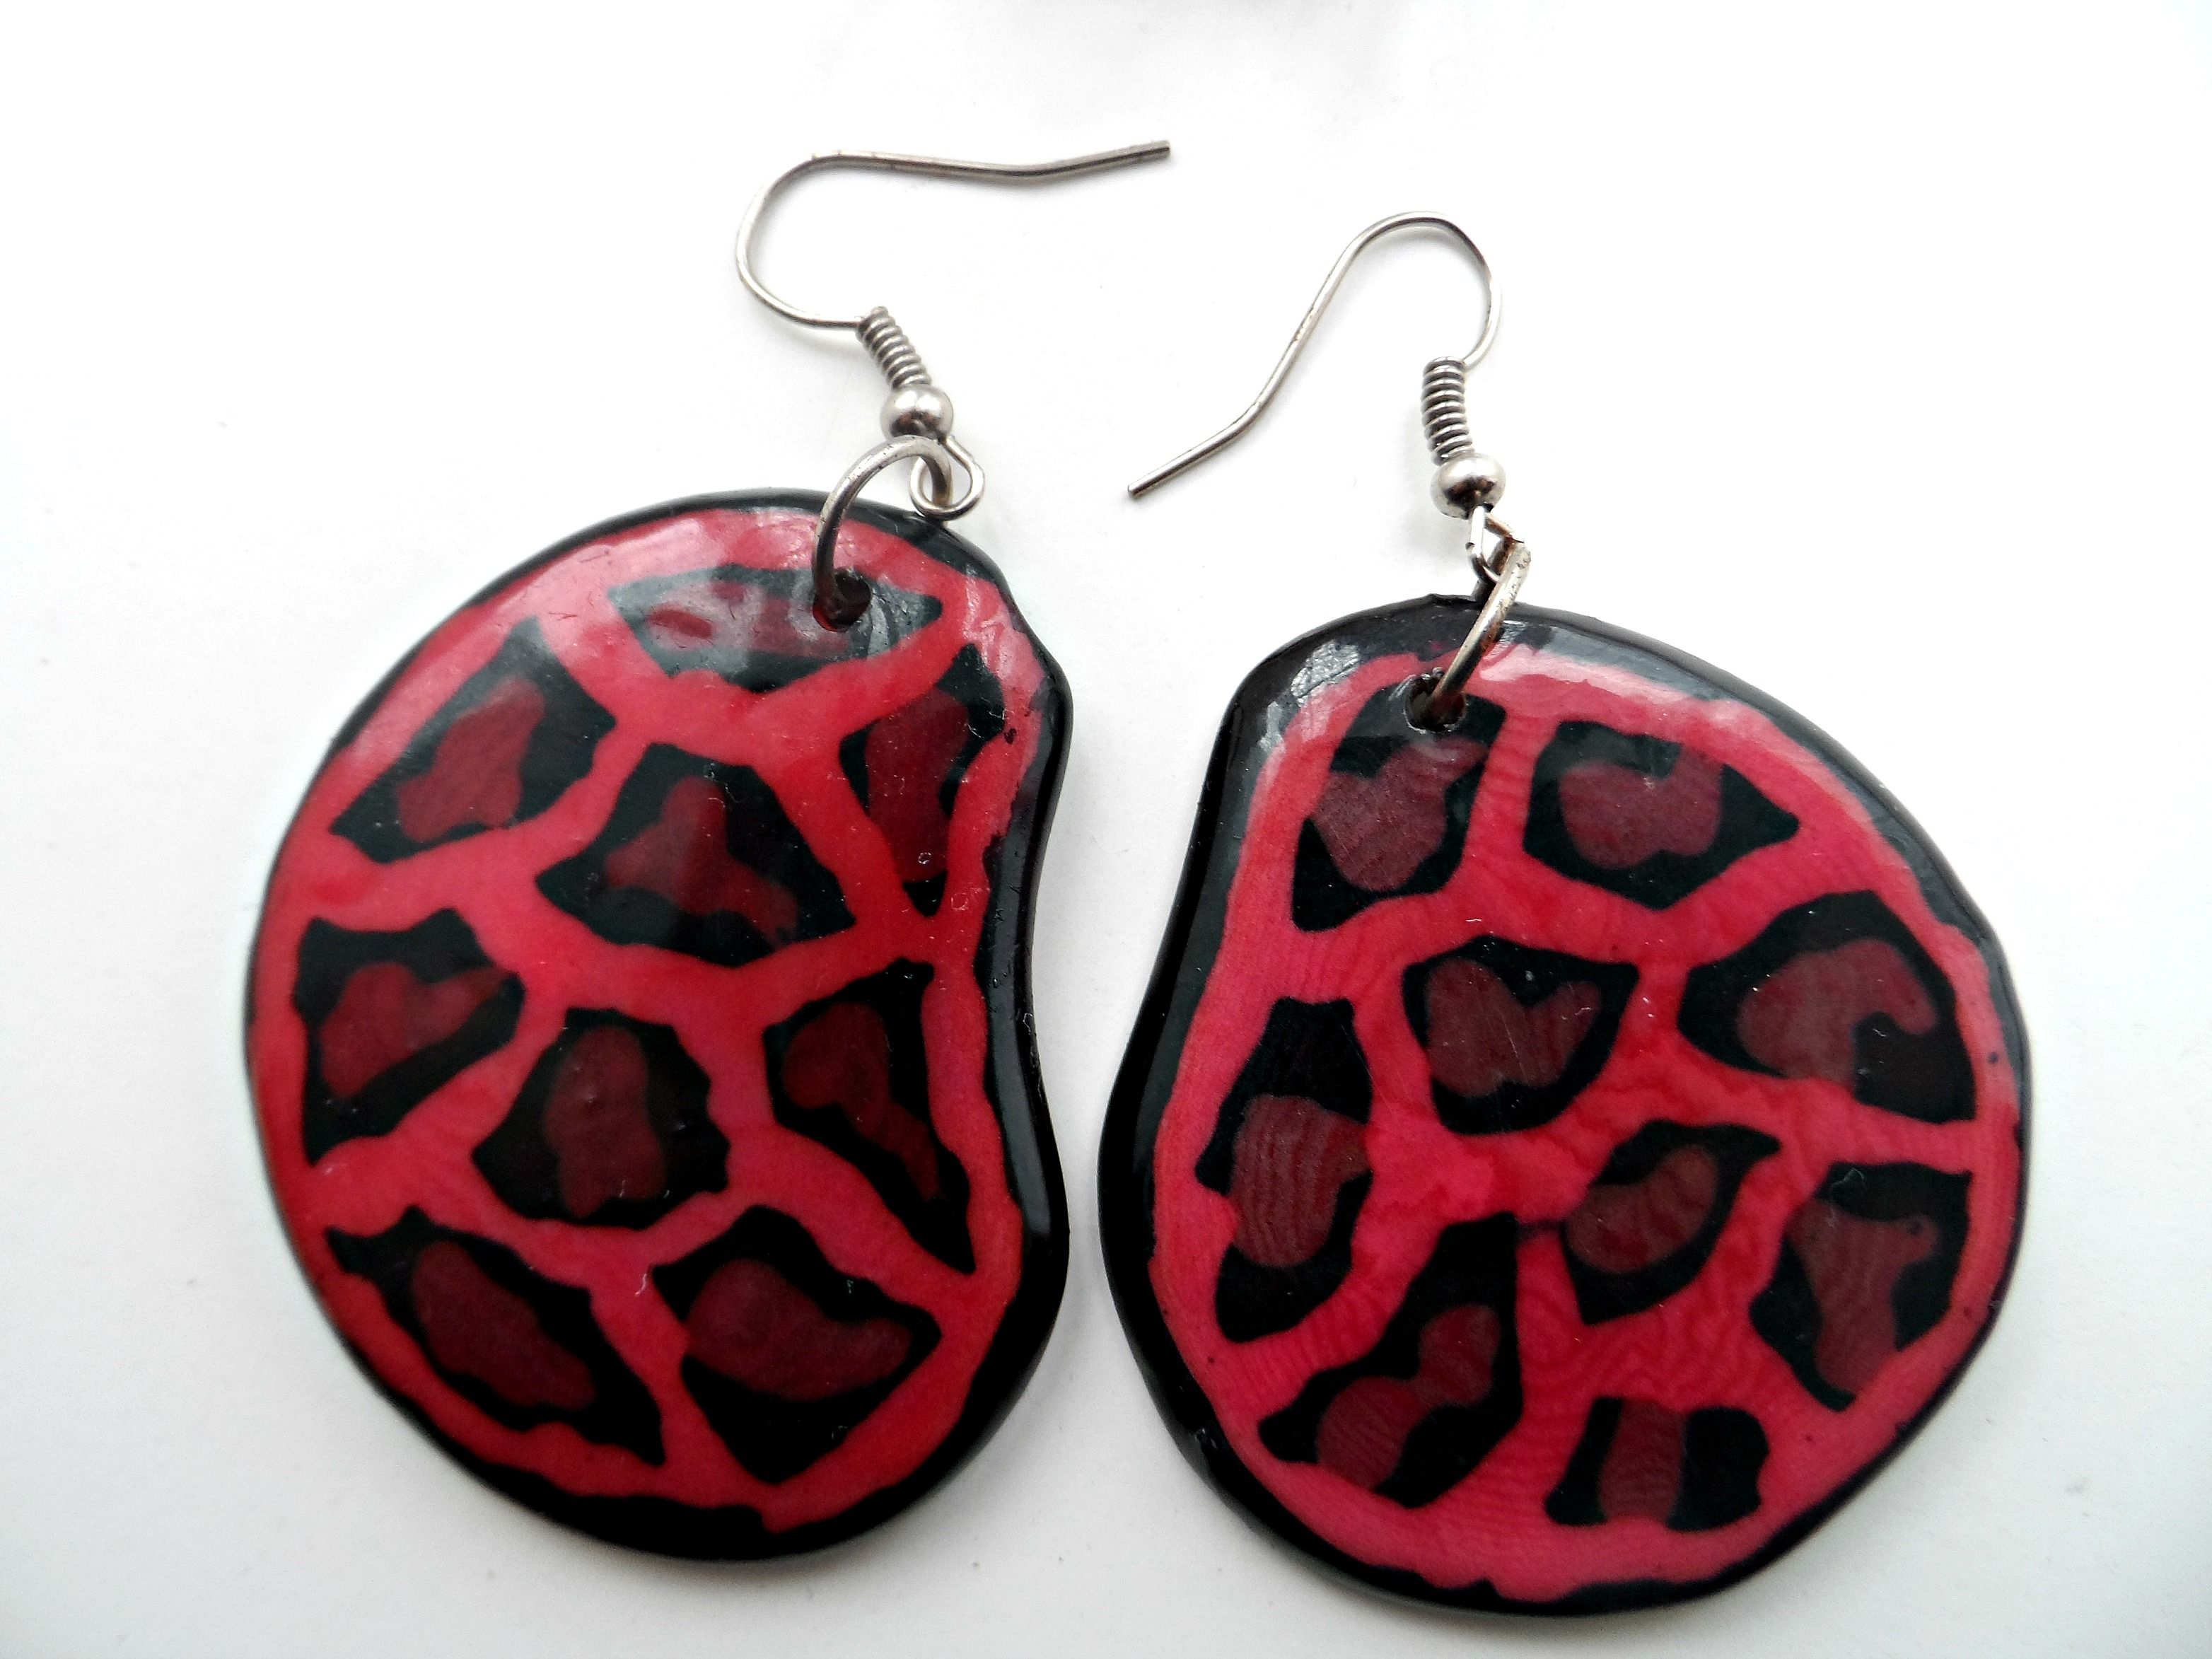 A Stunning pair of statement earrings with a Tagua nut piece # tagua #colombia